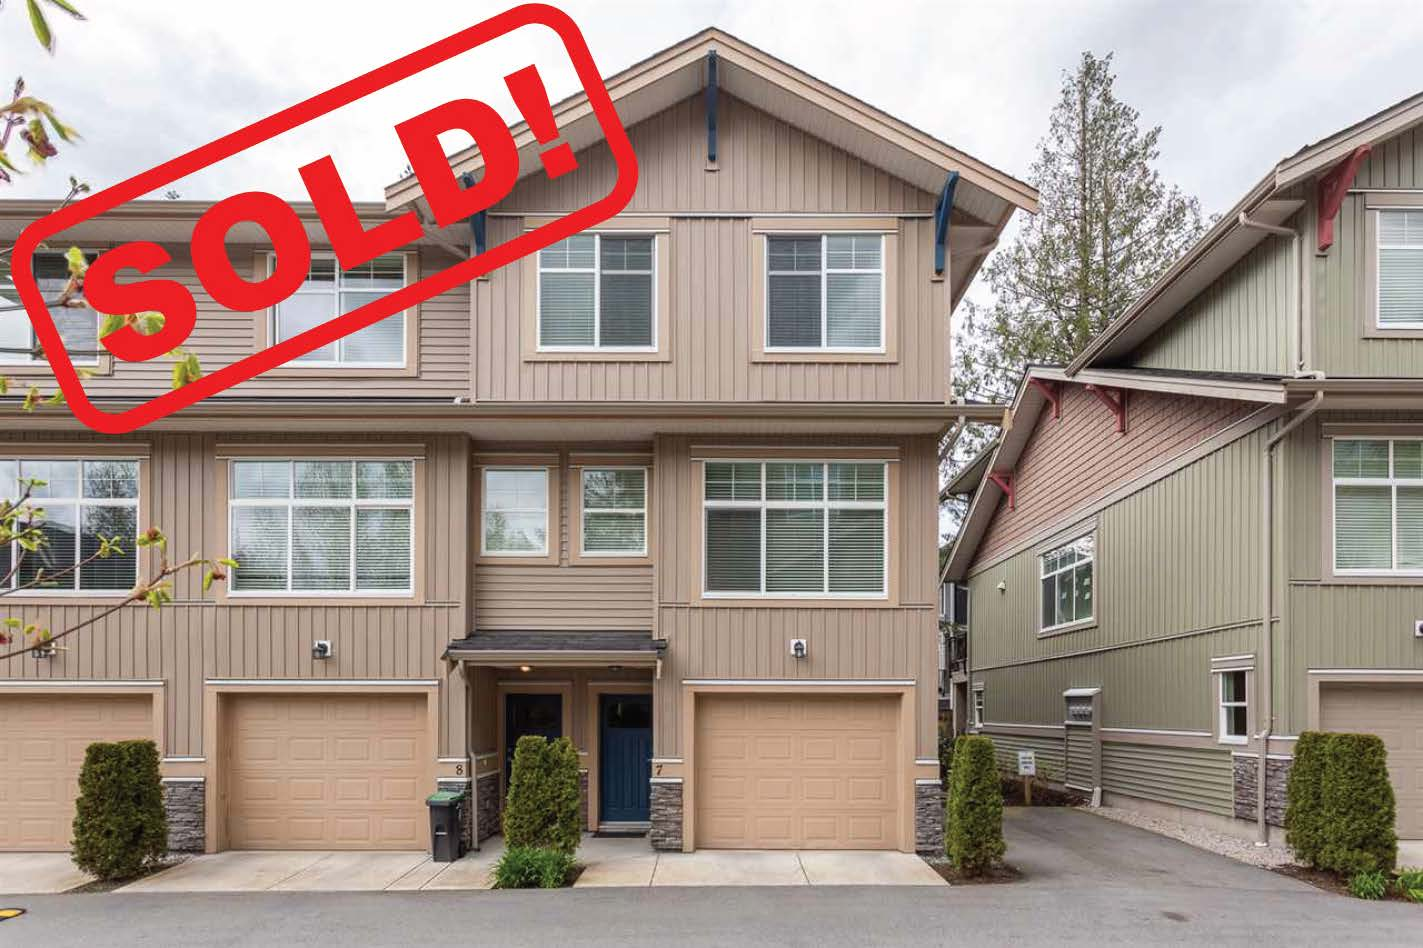 7-20967 76 Avenue   sold for: $507,500  3 Bed | 3 Bath | 1,415 SF